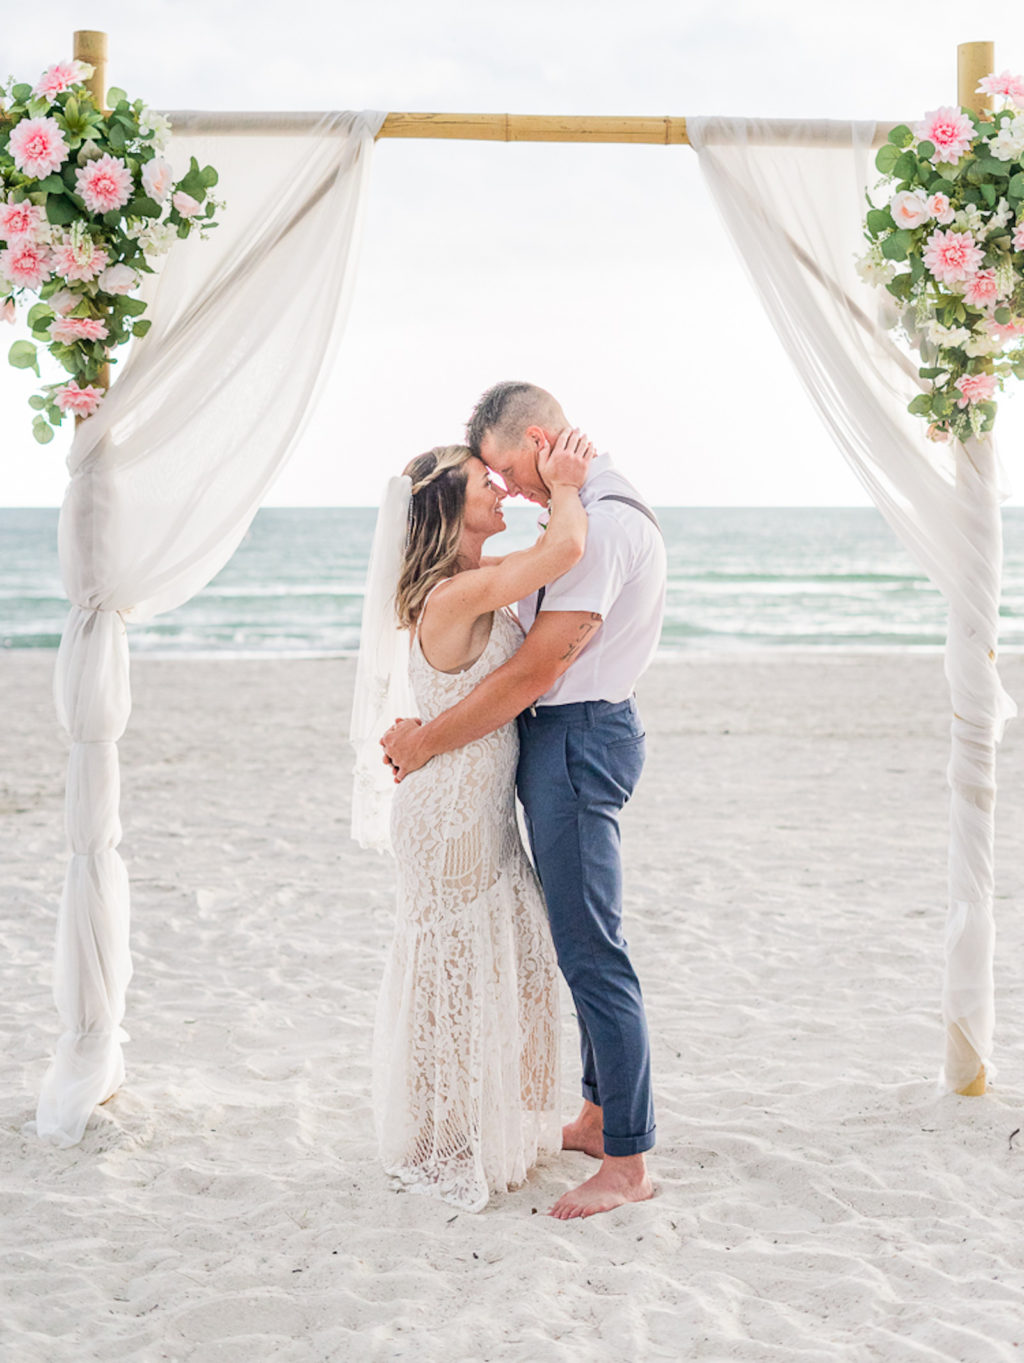 St. Petersburg Florida Beach Wedding Ceremony | Bamboo Arch Backdrop with Sheer White Draping and Blush Pink Floral Arrangements | Outdoor Bride and Groom Portrait | Groom Navy Blue Pants with White Short Sleeve Shirt and Suspenders and Flip Flops | Lace Sheath Spaghetti Strap V Neck Boho Bridal Gown Wedding Dress